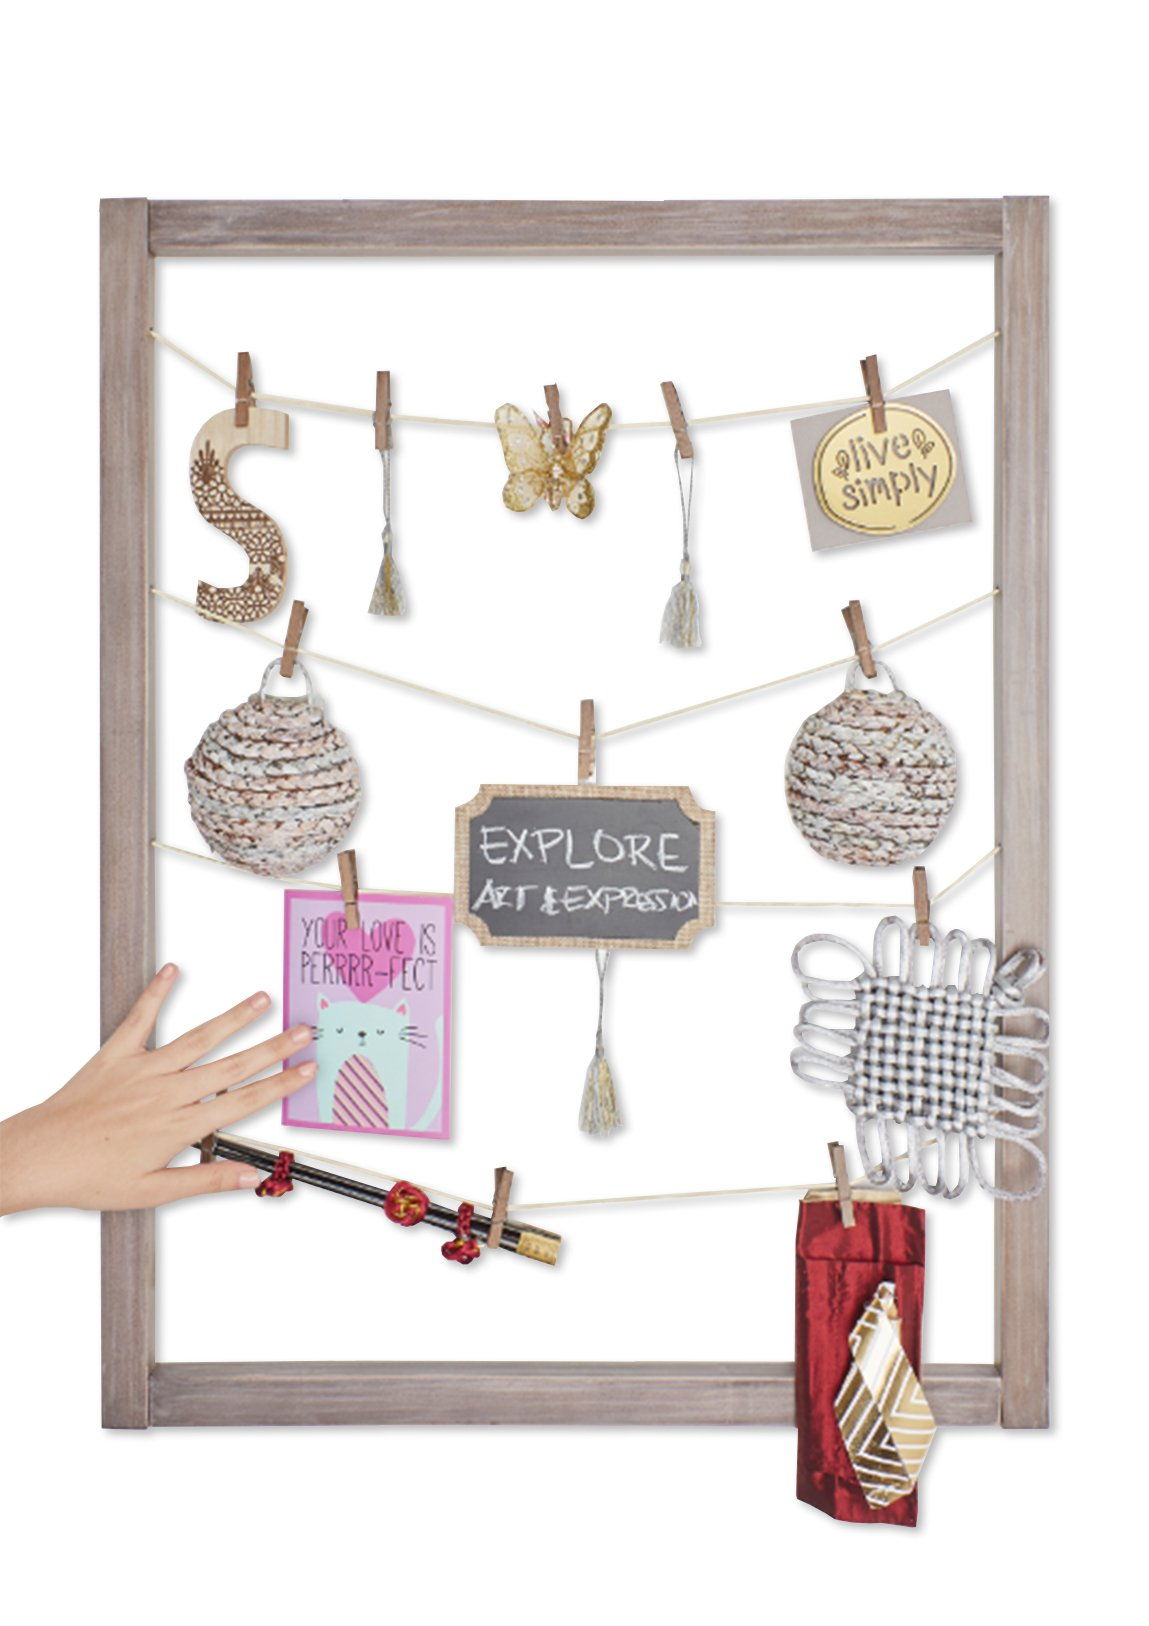 Reimagine Hanging Photo Display- Wood Wall Picture Frame Collage Board for Hanging Prints, Instax, Polaroid, Holiday Cards, Artwork- Display 2 Ways- Adjustable String, 40 Clothespin Clips- Rustic Grey by Zen Decor